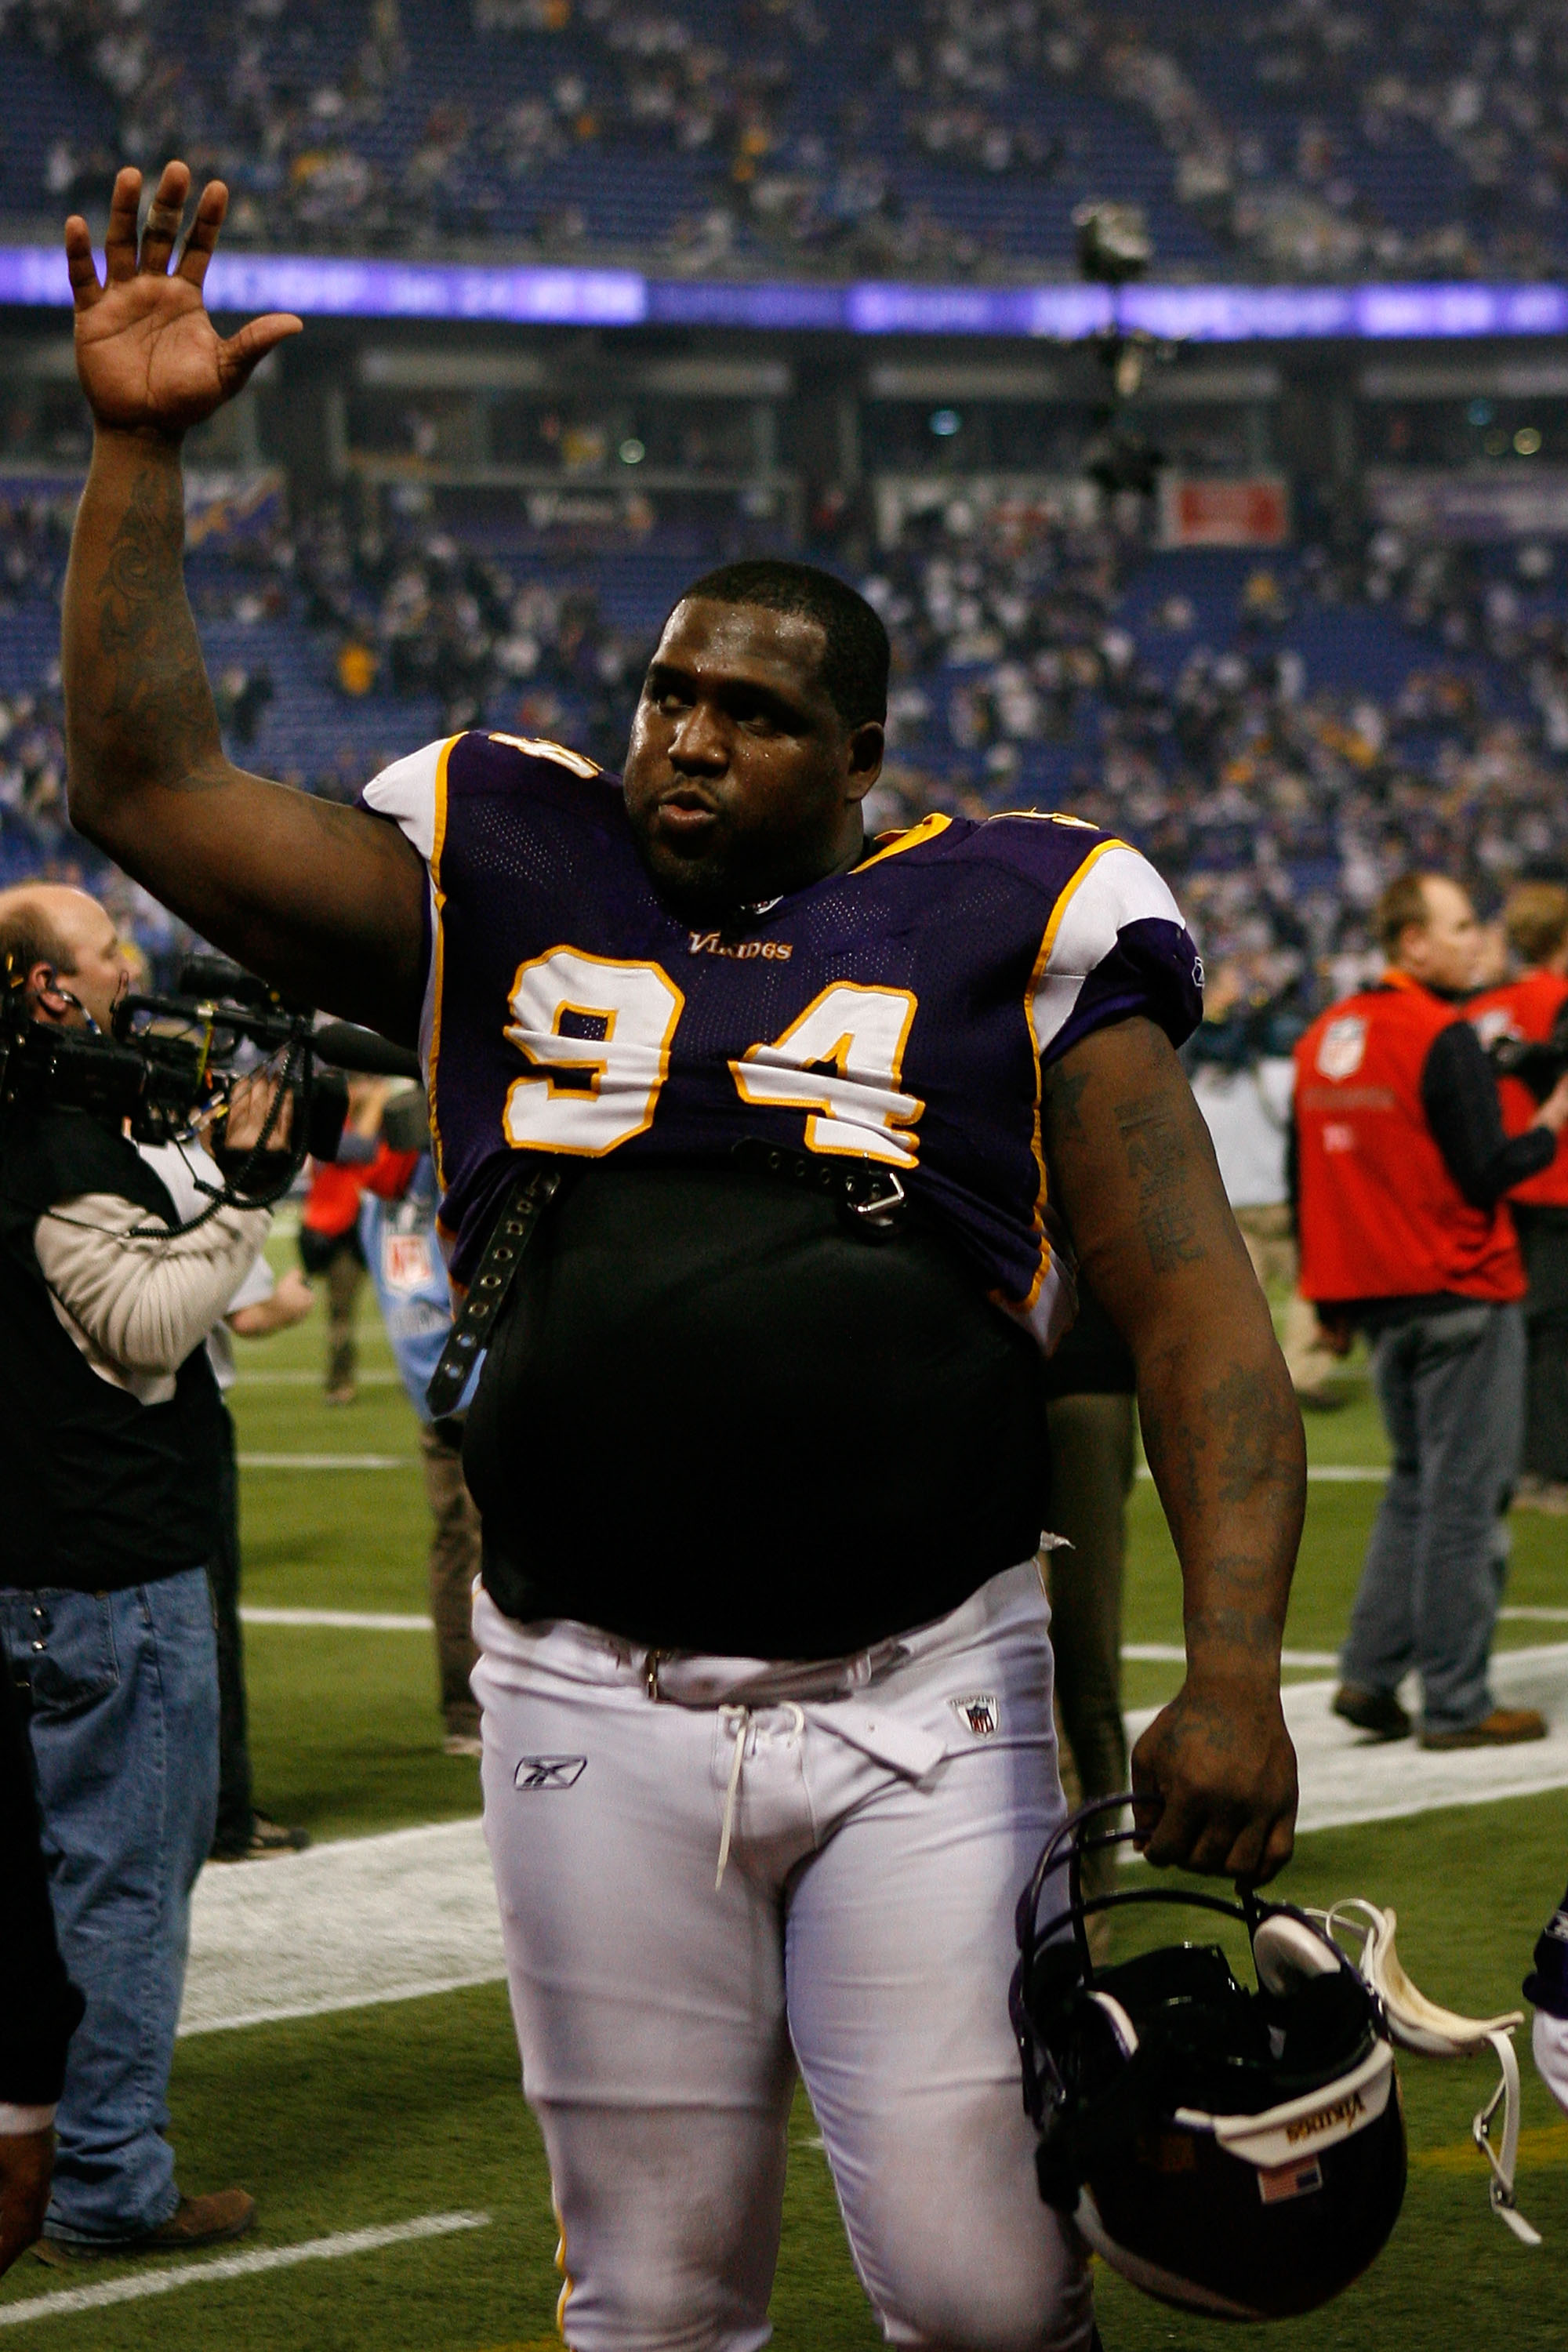 MINNEAPOLIS - JANUARY 17:  Pat Williams #94 of the Minnesota Vikings walks off the field after defeating the Dallas Cowboys 34-3 during the NFC Divisional Playoff Game at Hubert H. Humphrey Metrodome on January 17, 2010 in Minneapolis, Minnesota.  (Photo